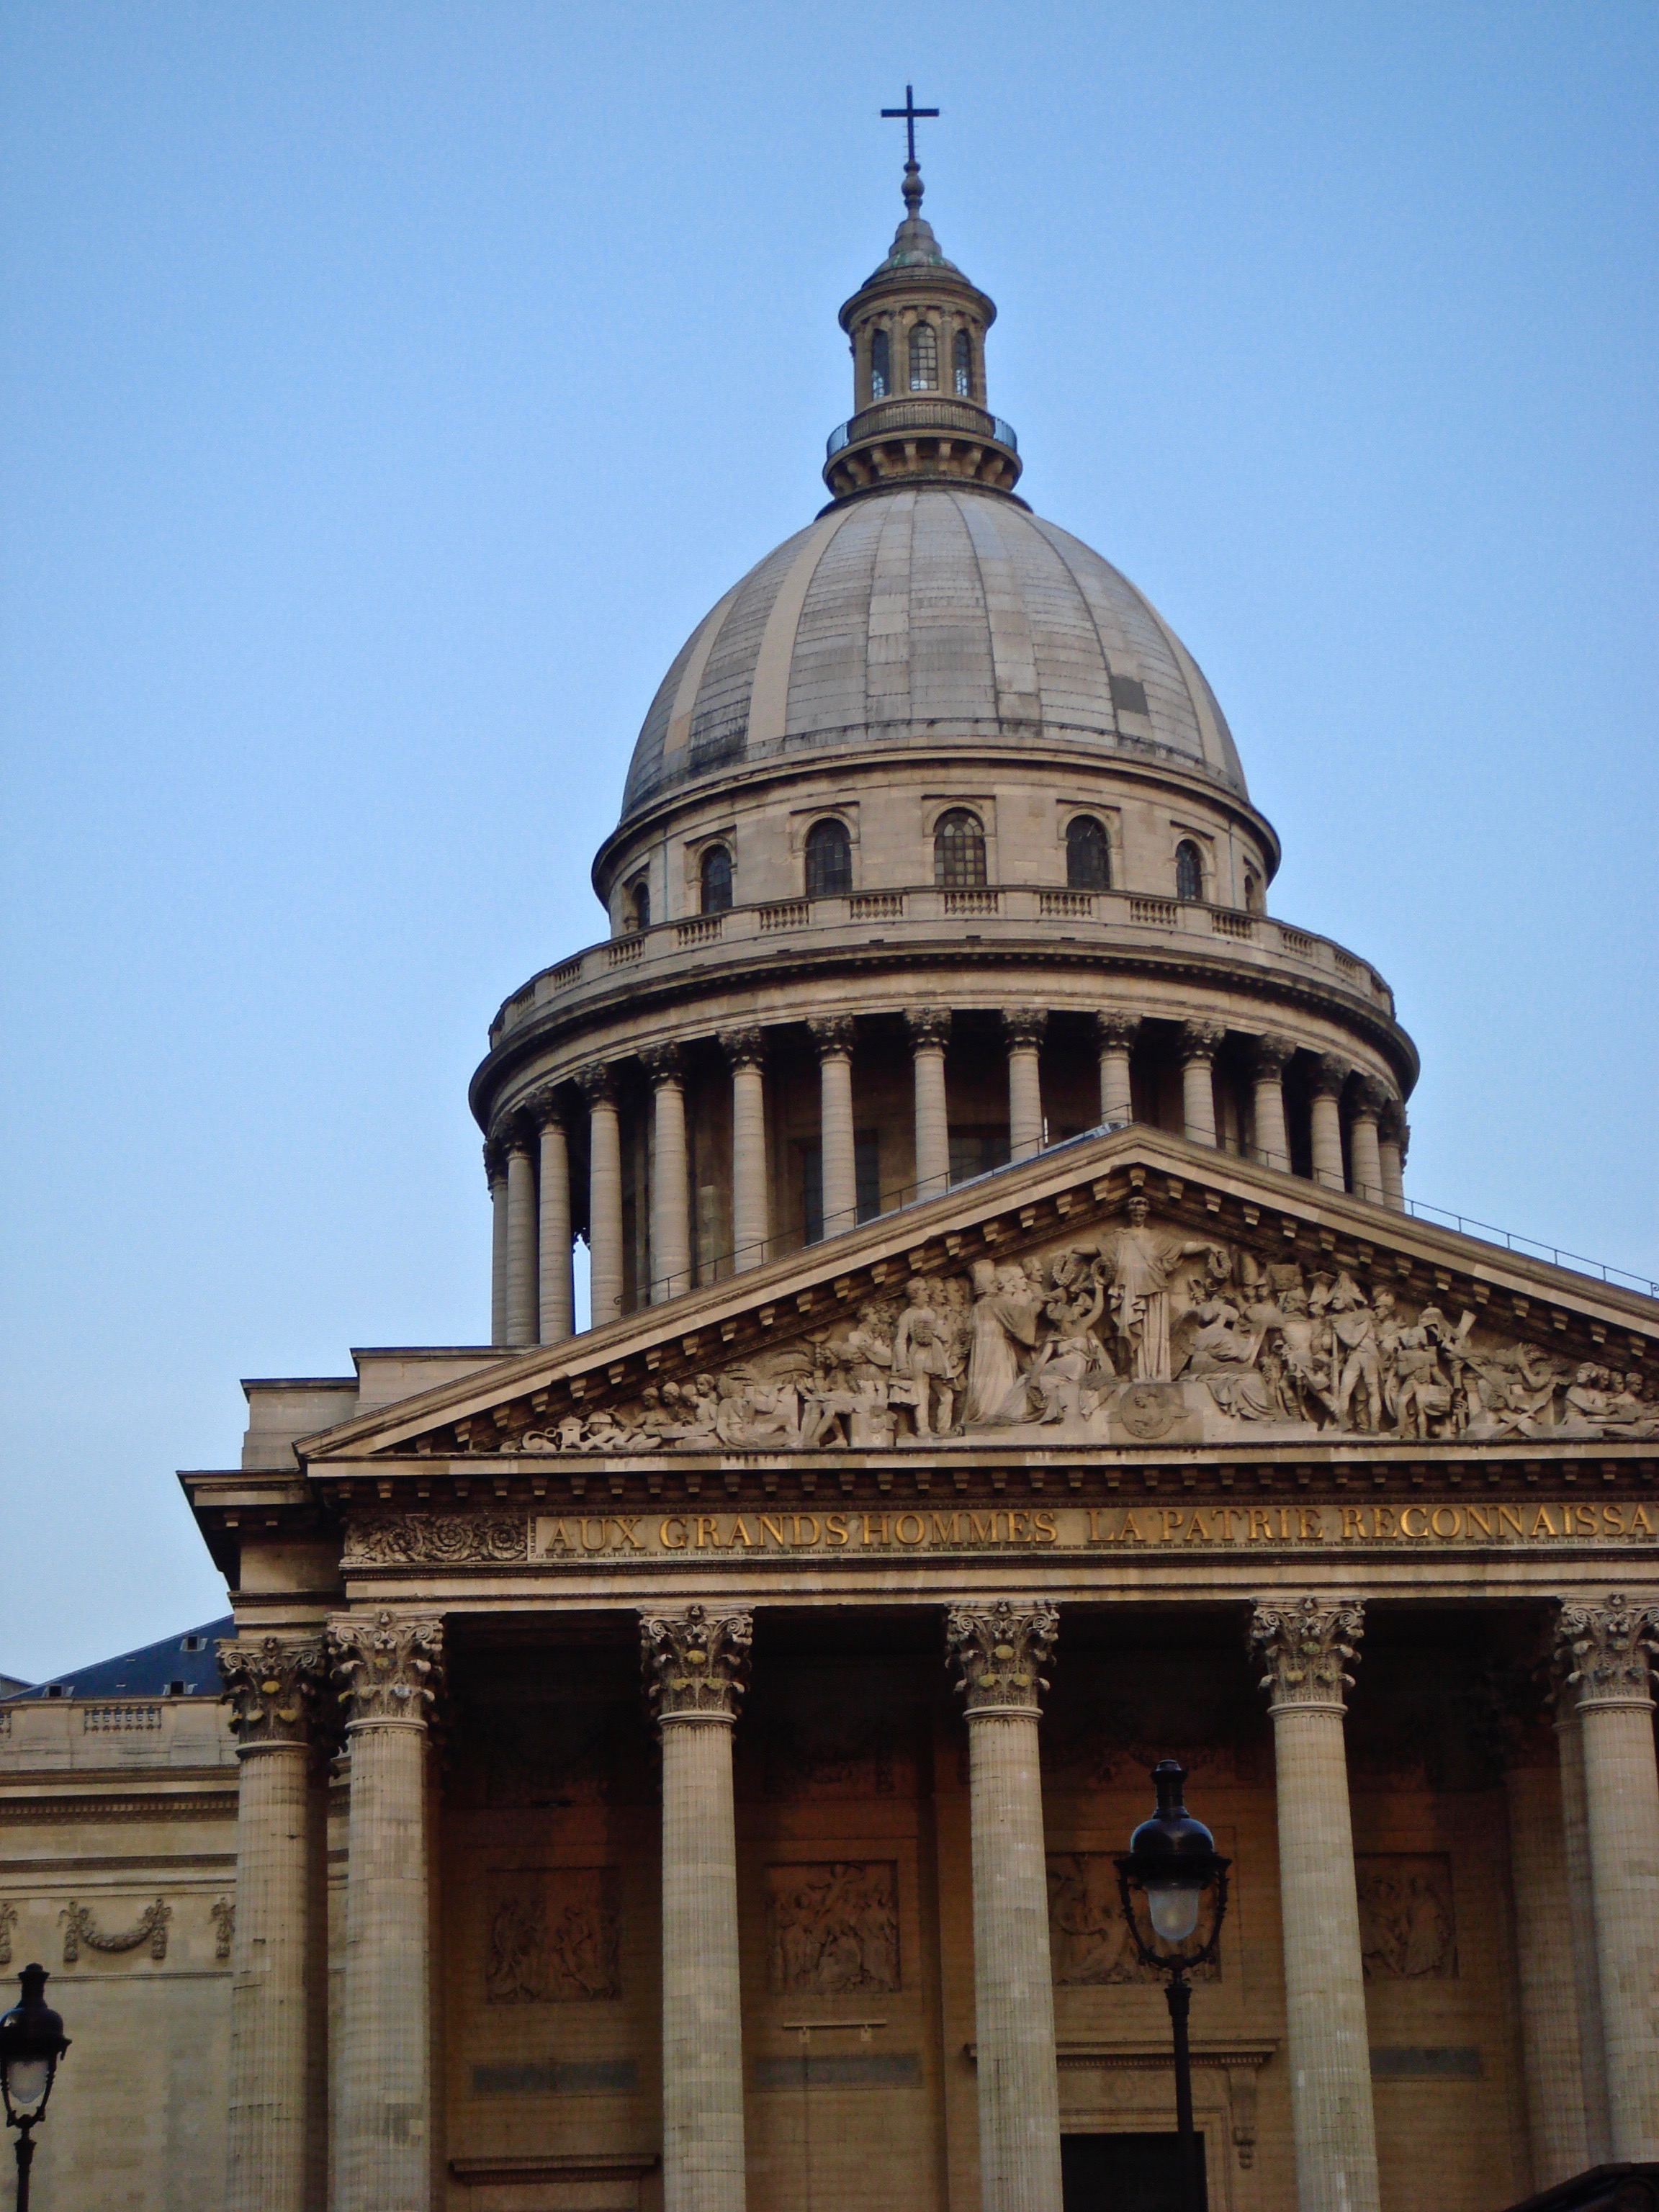 The facade of the Paris Pantheon is similar to the Roman one, but it is topped by a huge dome